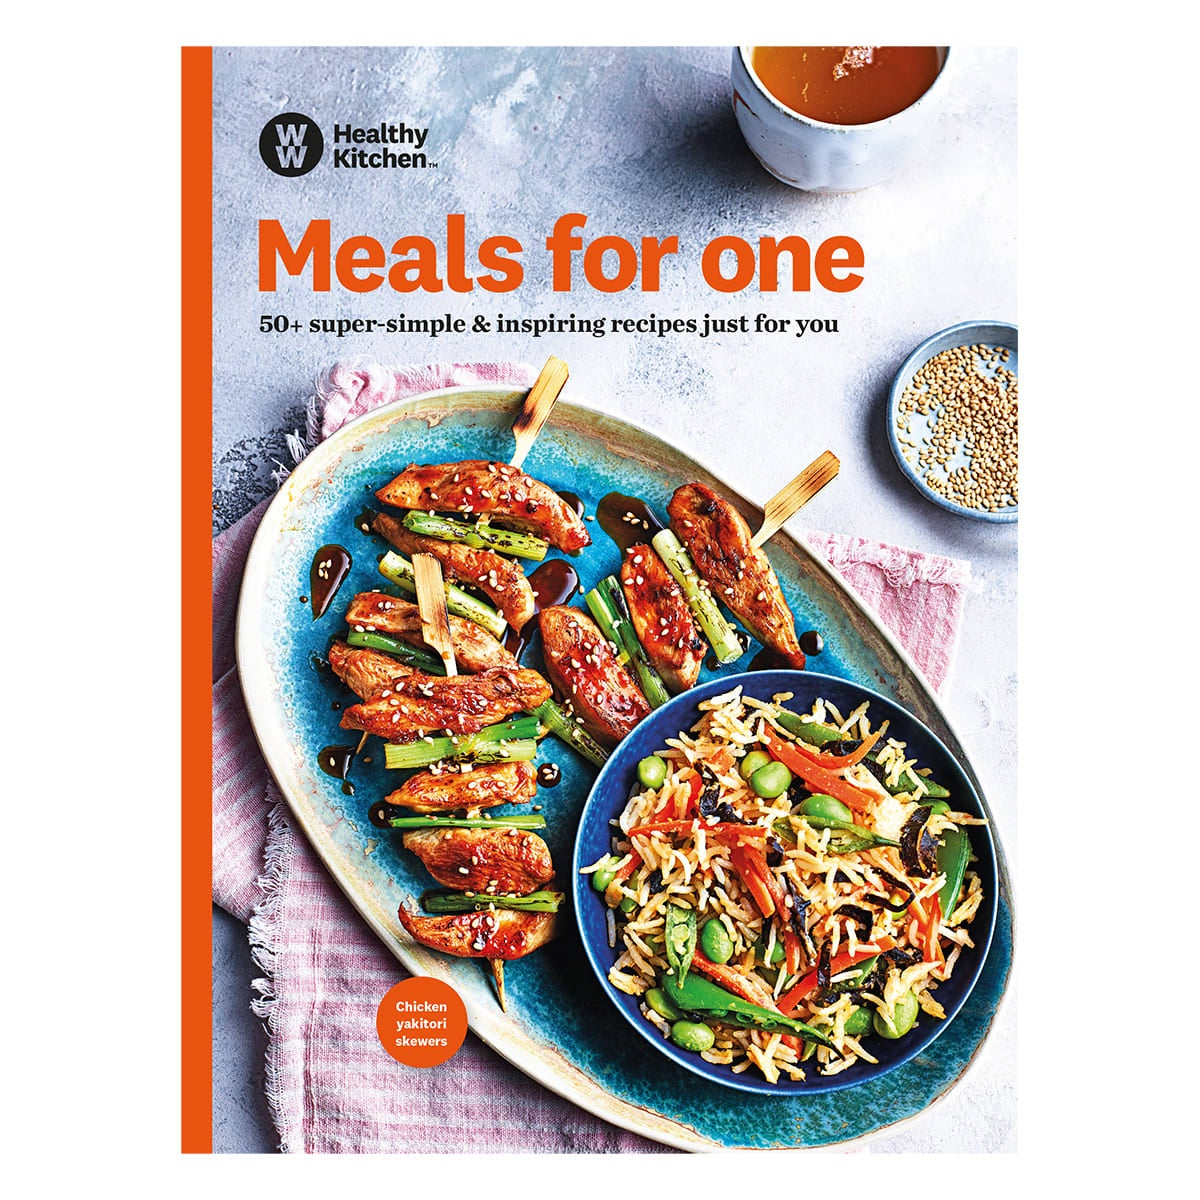 WW Meals for One Cookbooks, 54 single-serving recipes, fresh, healthy and easy to make, light bites and midweek meals